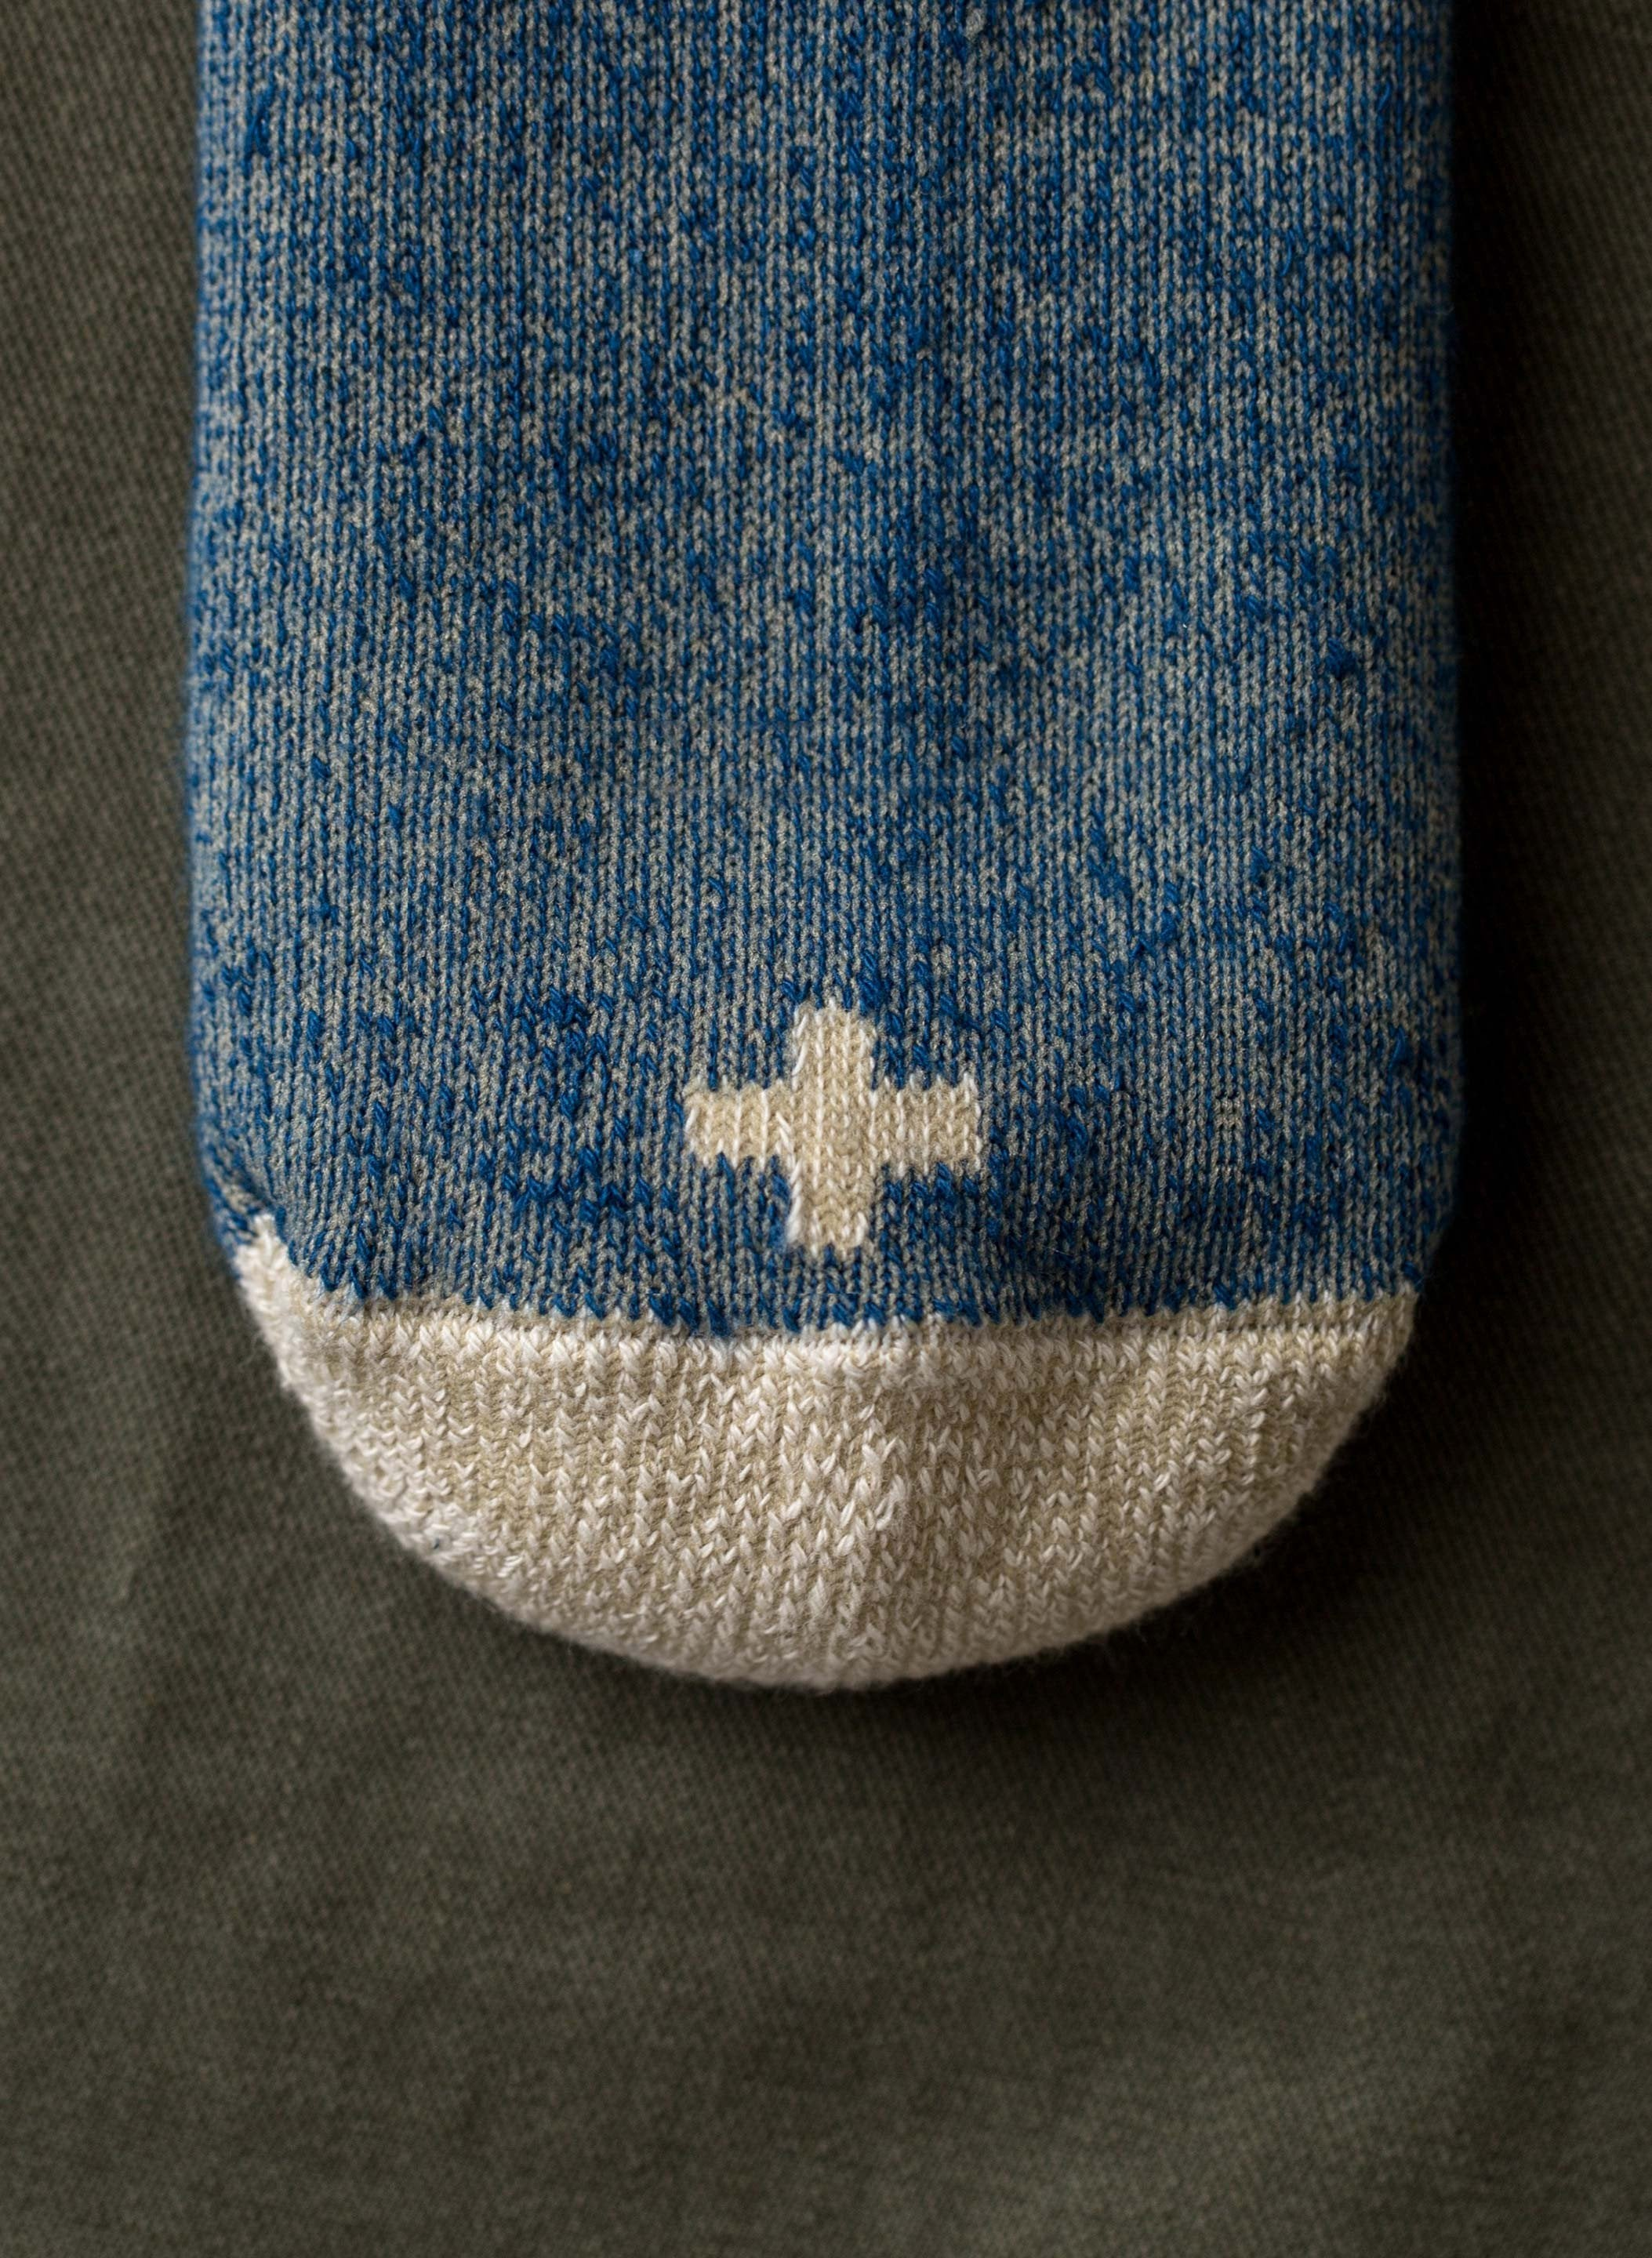 imogene + willie - boot sock in marled indigo